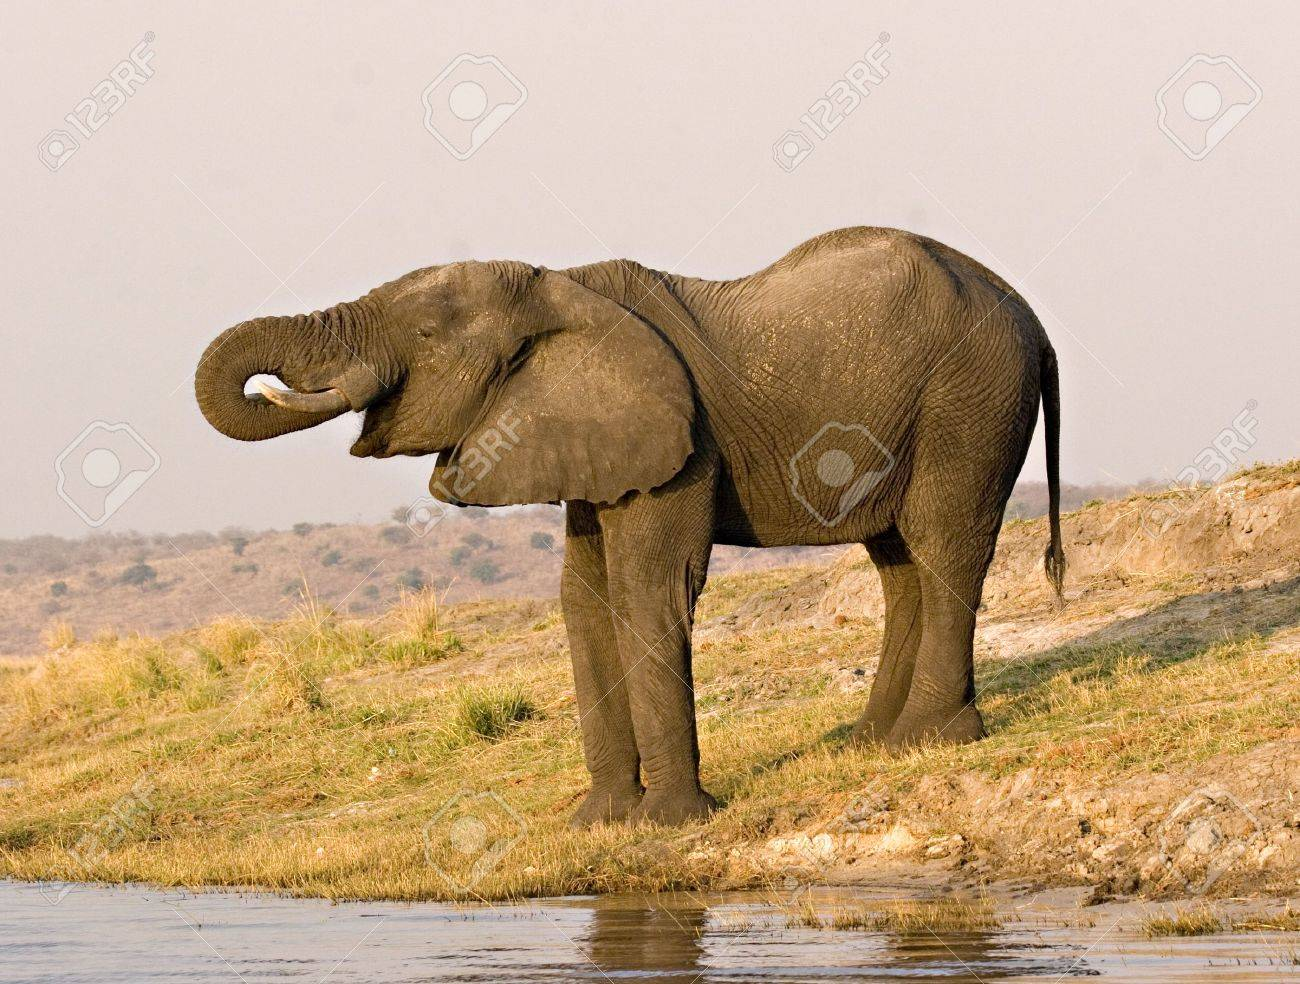 African elephant drinking from Chobe River in Botswana Stock Photo - 1599177